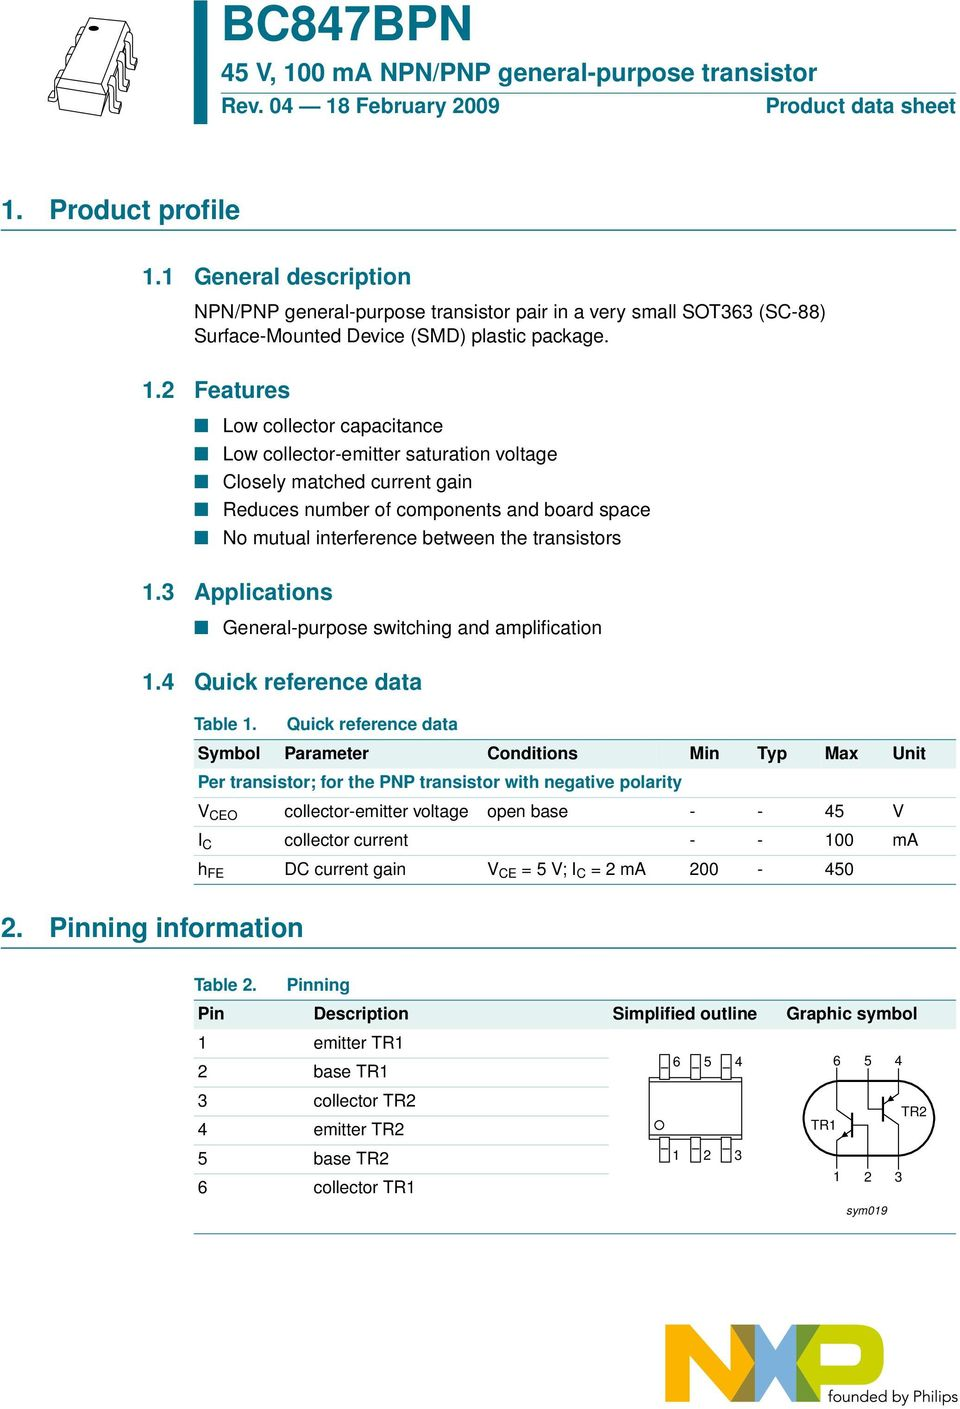 transistors 1.3 Applications General-purpose switching and amplification 1.4 Quick reference data Table 1.